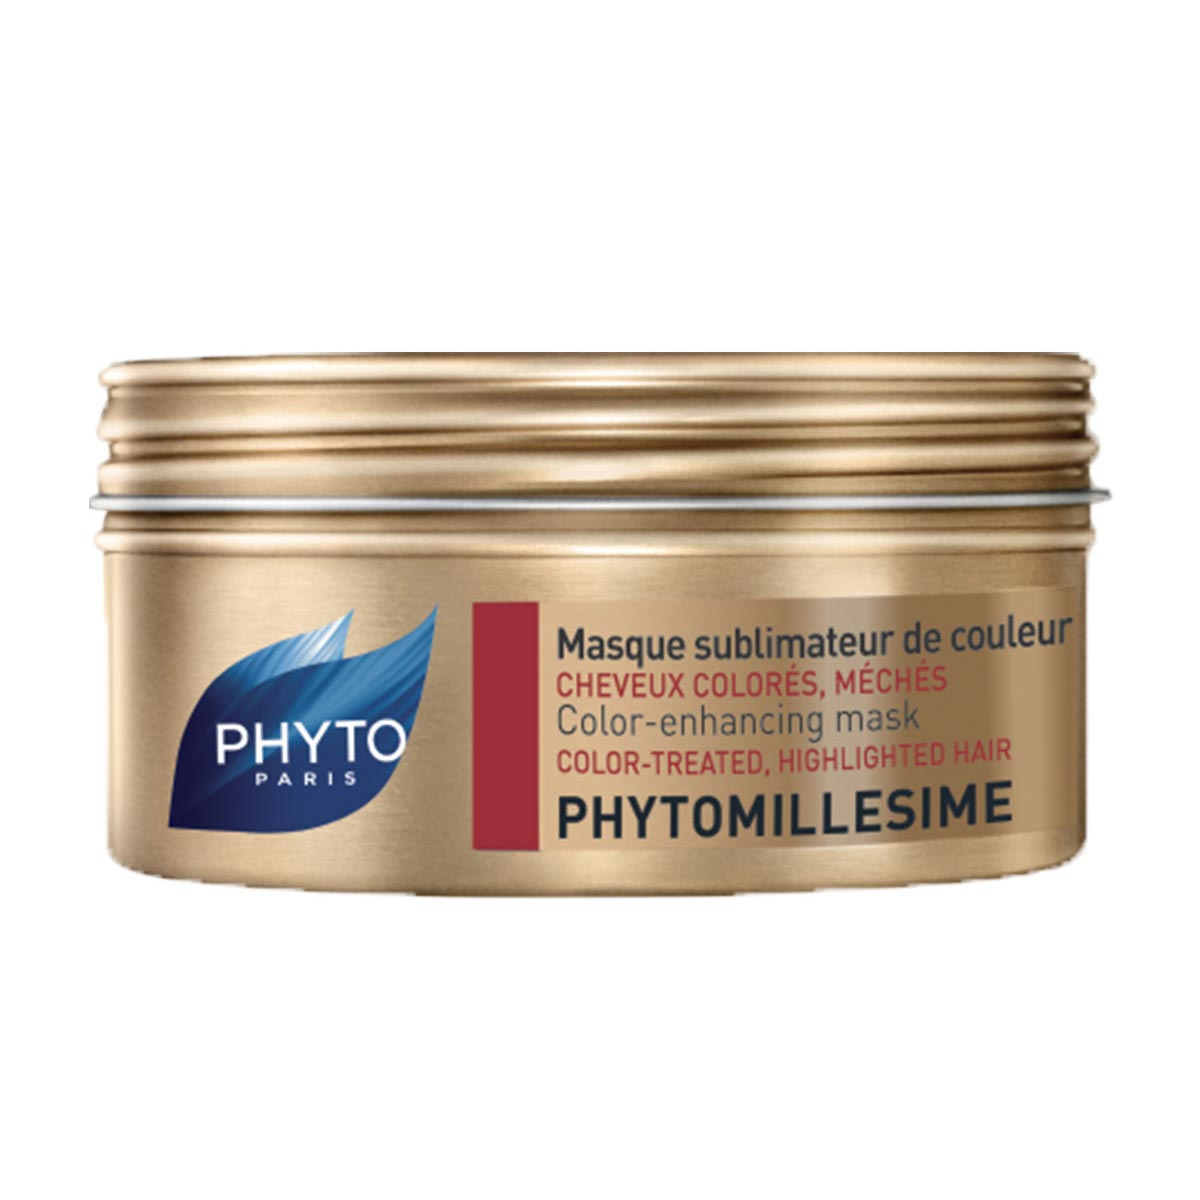 Phytomillesime - Masque Sublimateur Couleur - Phyto 200ml